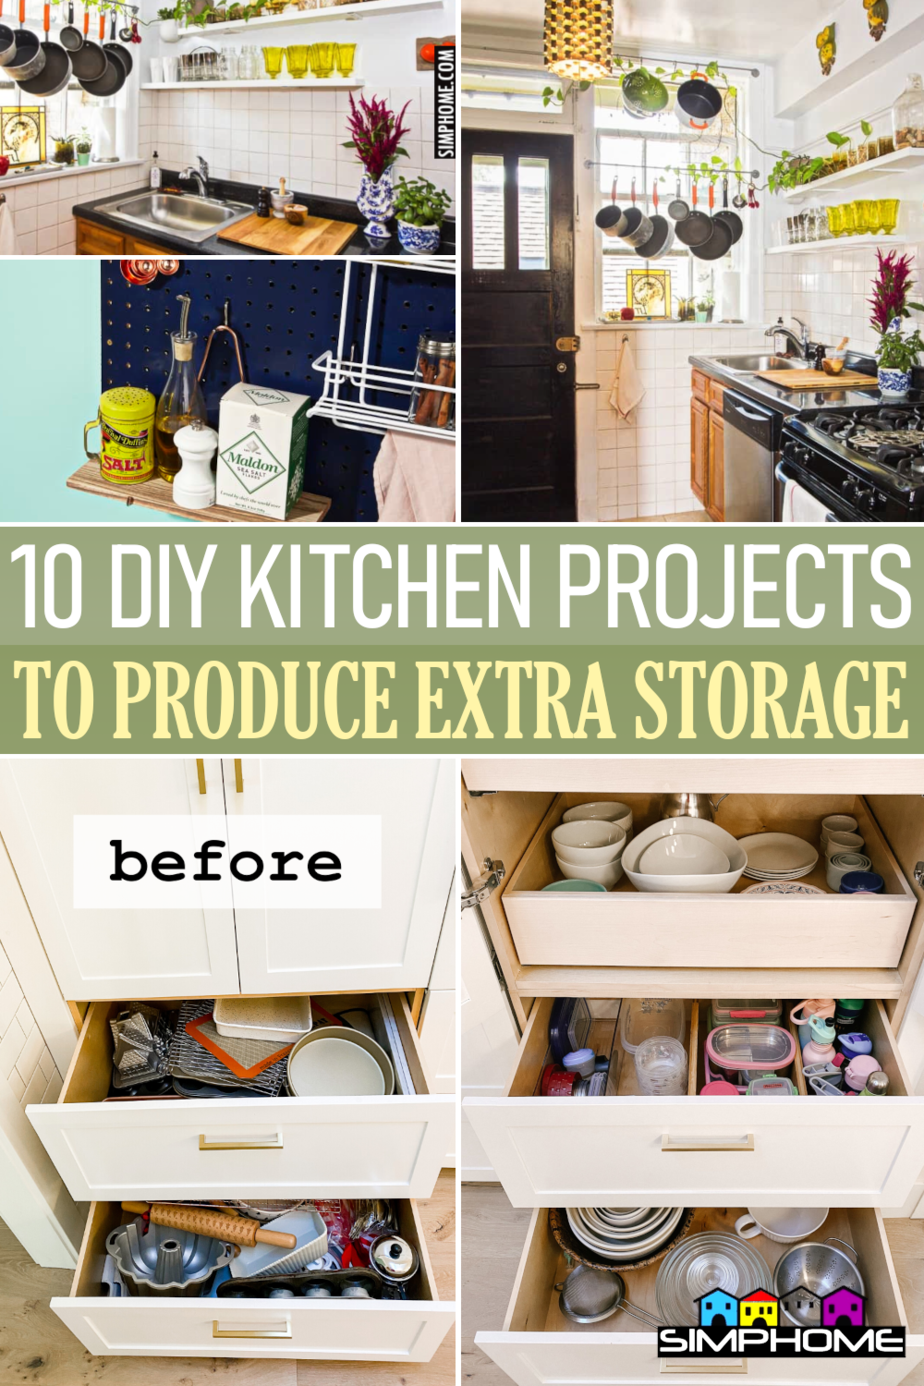 10 DIY Kitchen Projects To Produce Extra Storge via Simphome.comFeatured